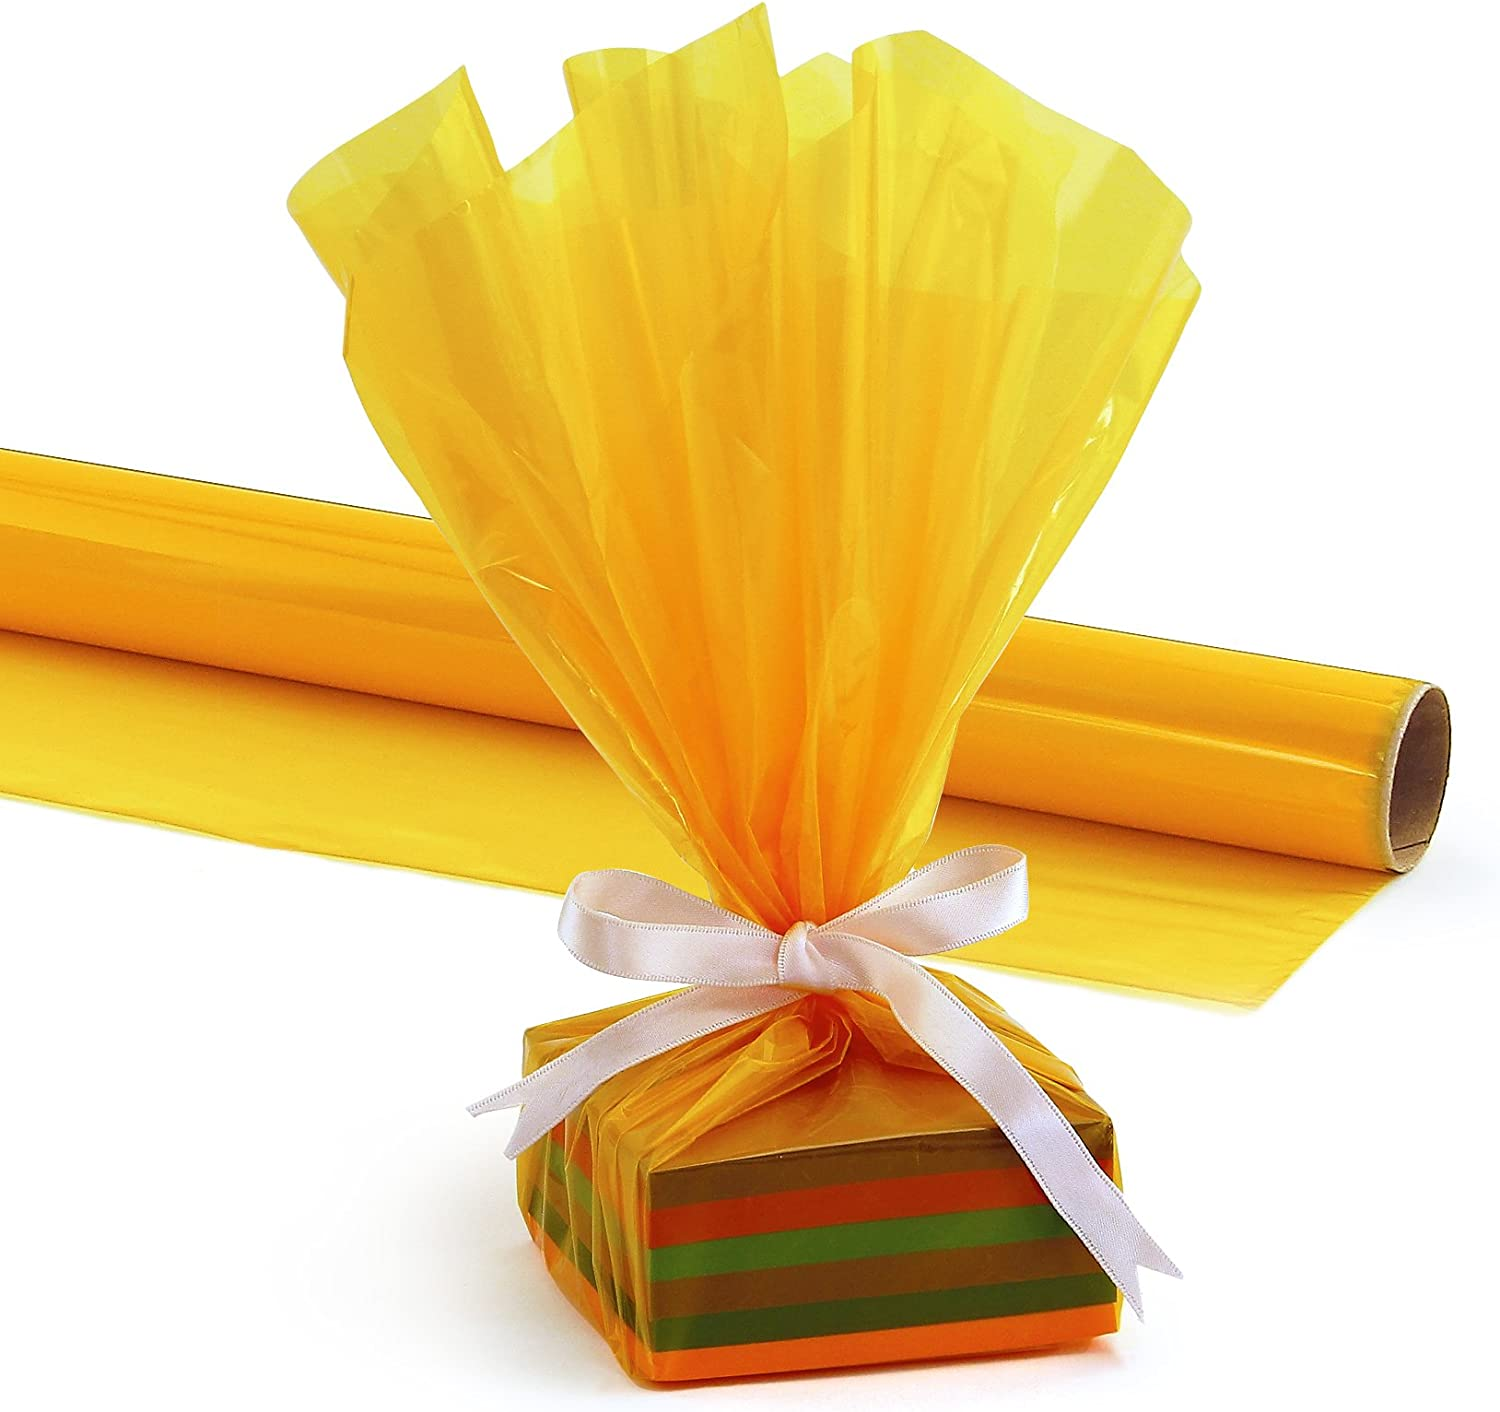 20-Inch by 5-Feet HYGLOSS 7608 Cello Gift Wrap Roll Yellow